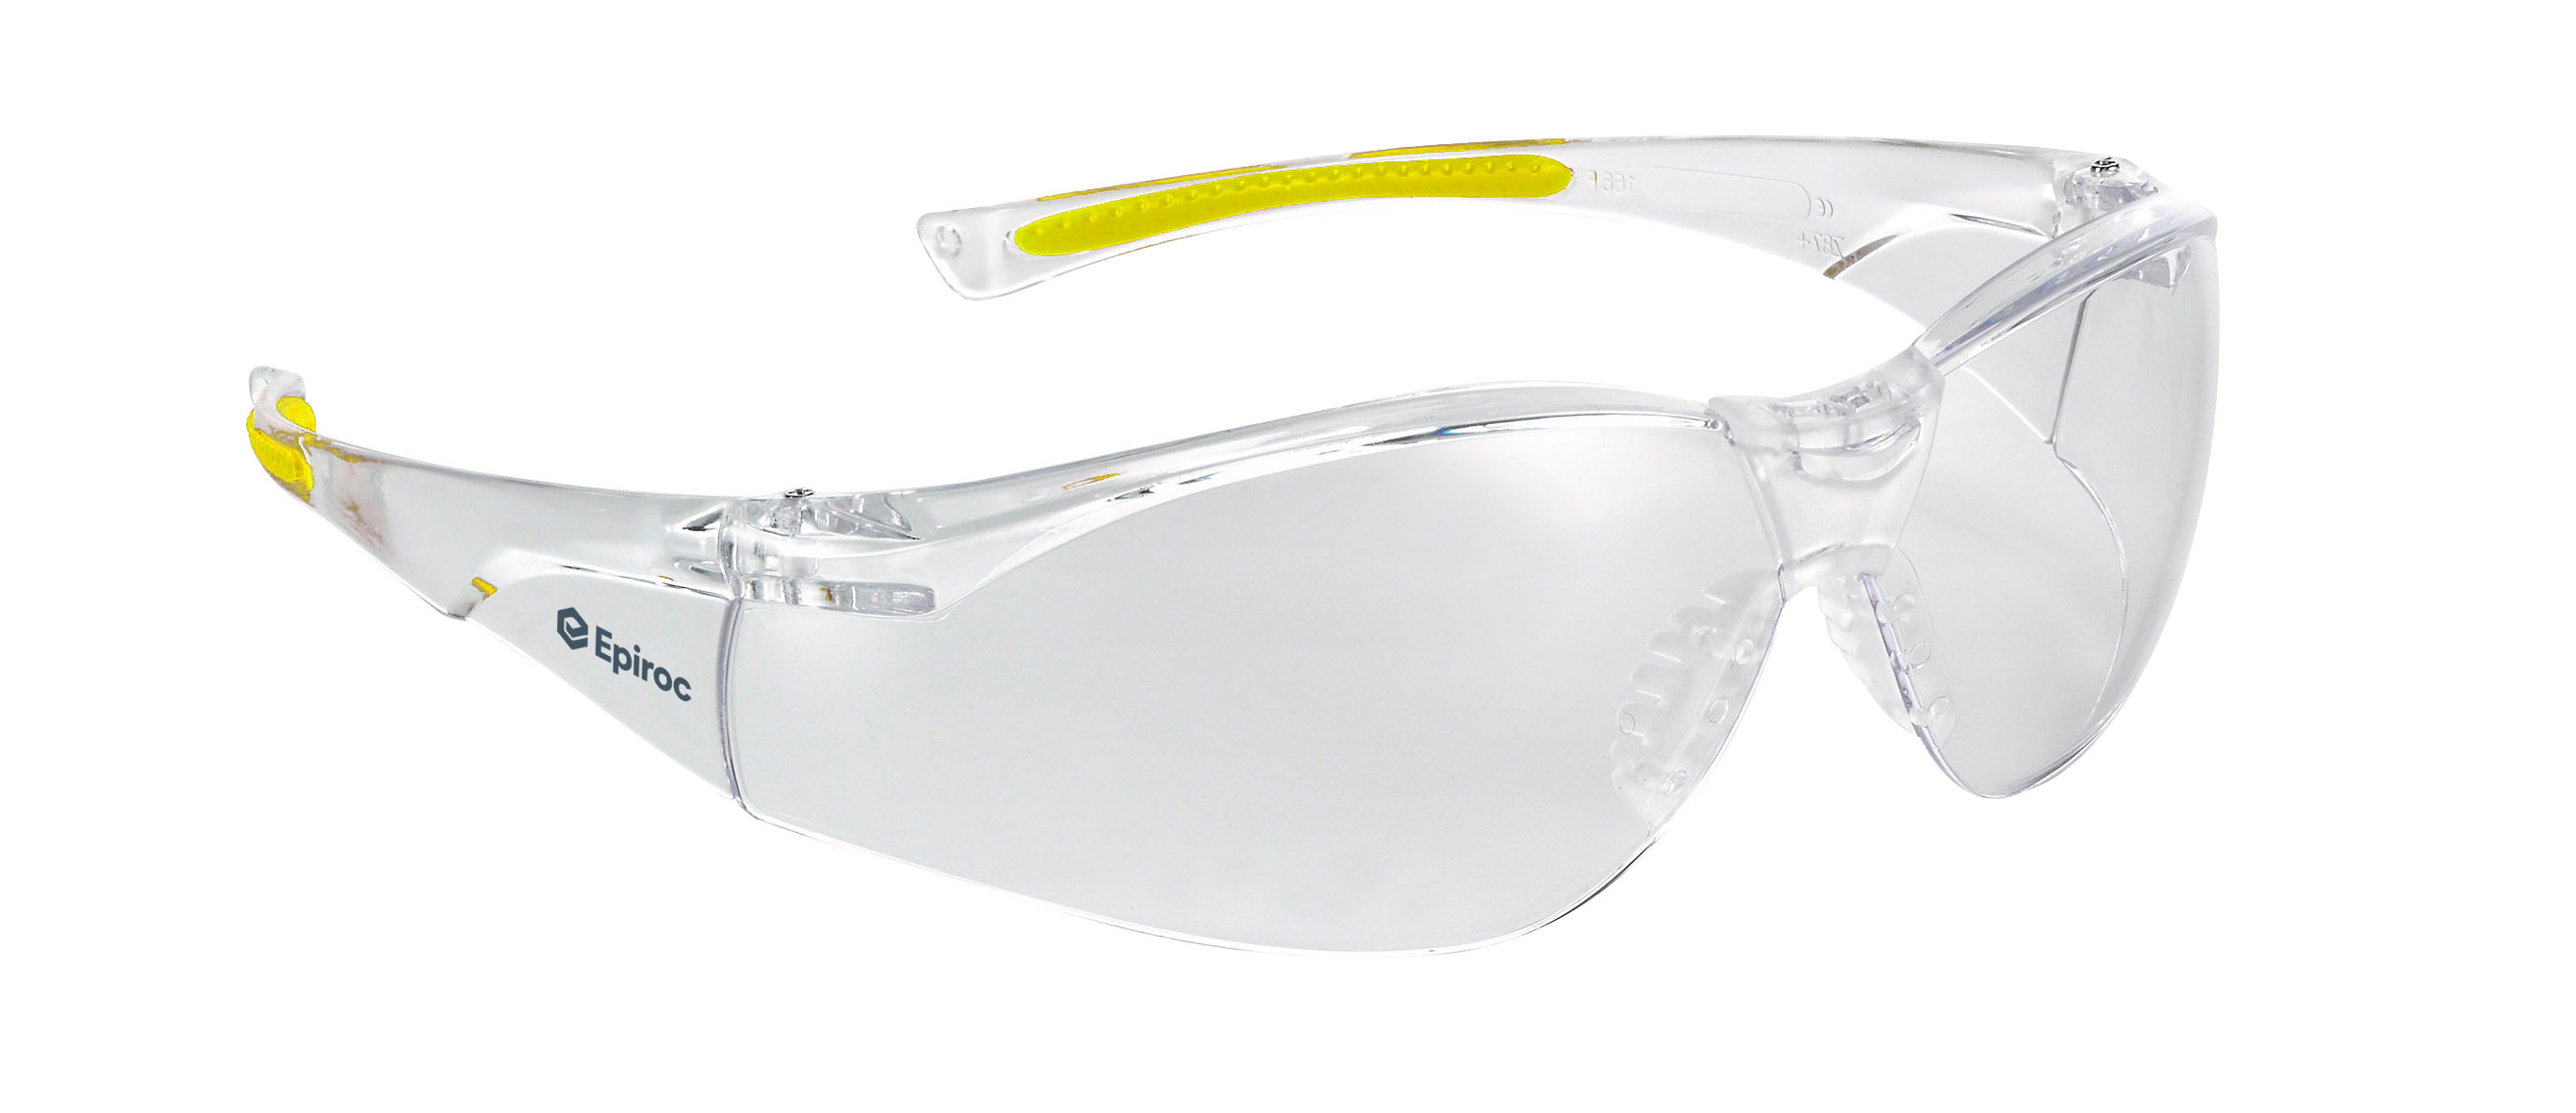 This safety eyewear is designed to offer the best possible protection and has been checked aesthetically and for proper fit to allow Epirocs operators to work in complete harmony with the eyewear. The eyewear is made from PC and non-allergic rubber, with a non-slip rubber nose pad and eyebrow protection. This safety eyewear meets the requirements of EN 166 EN166 EN 170 EN166 ANSI Z87.1 EN166